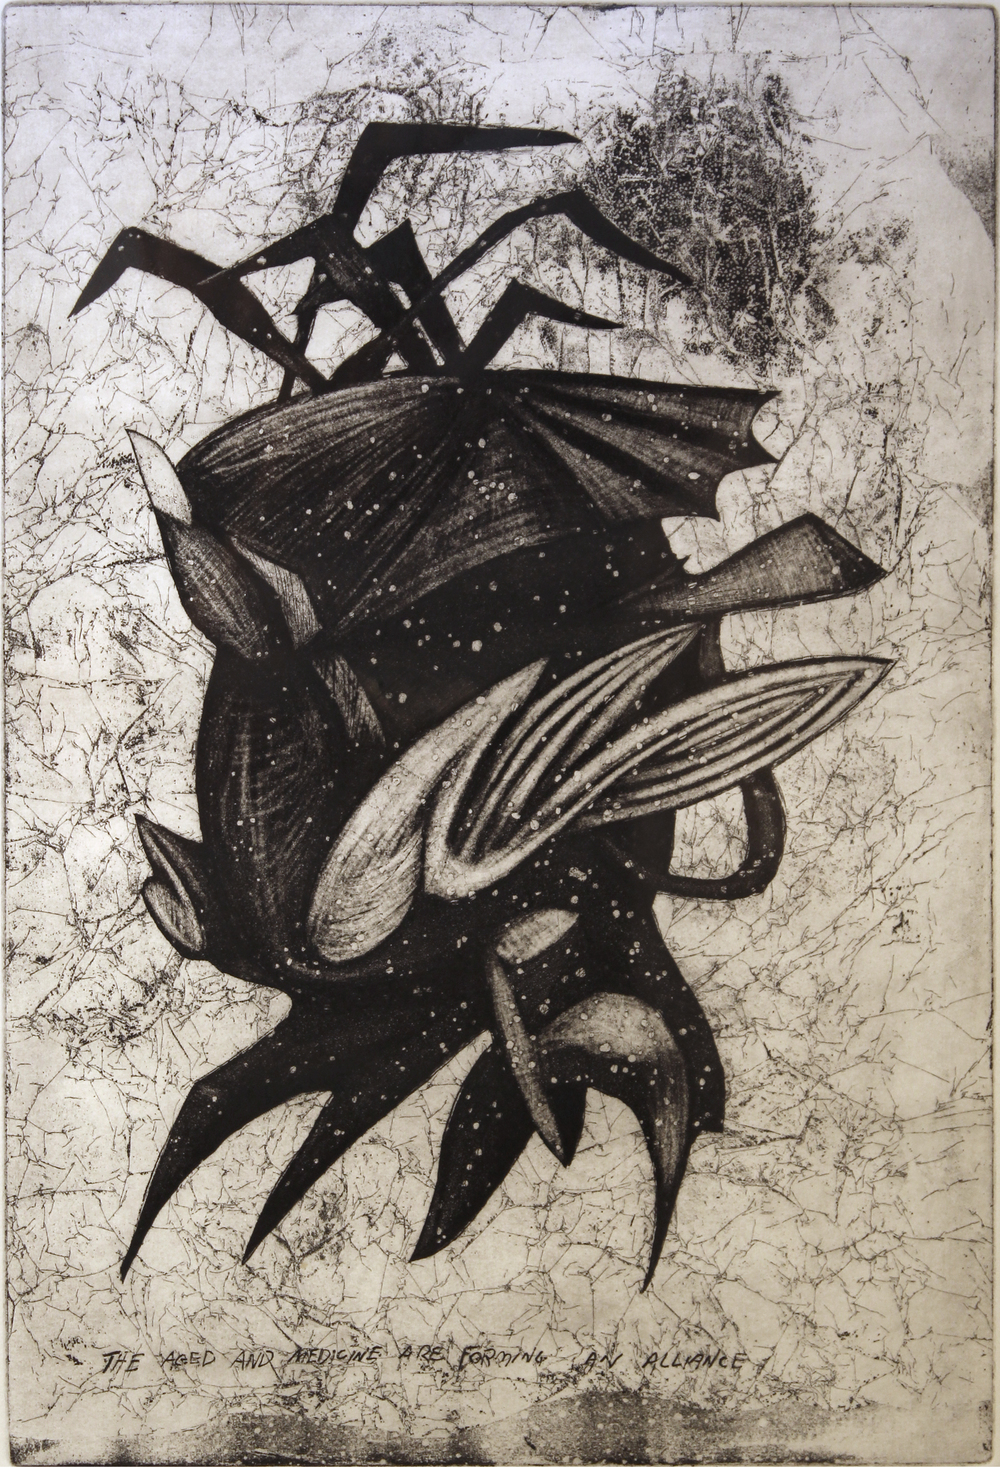 "Jim Nickel (BIO) ""The Aged and Medicine are Forming and Alliance,"" 1996  etching 3/25 27"" x 21"""